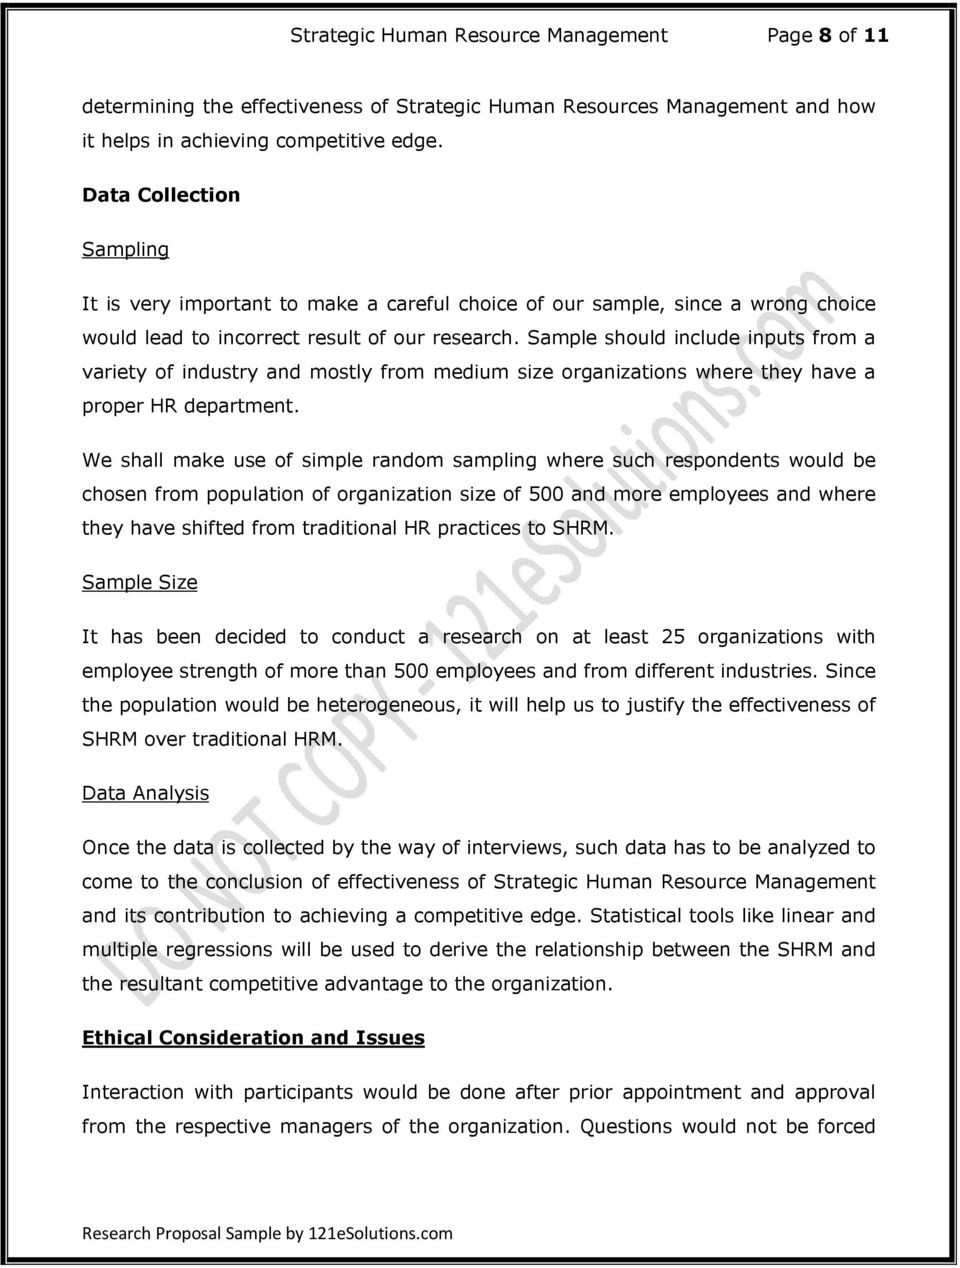 013 Action Research Proposal Paper Examples Page 8 Breathtaking Sample Papers 960